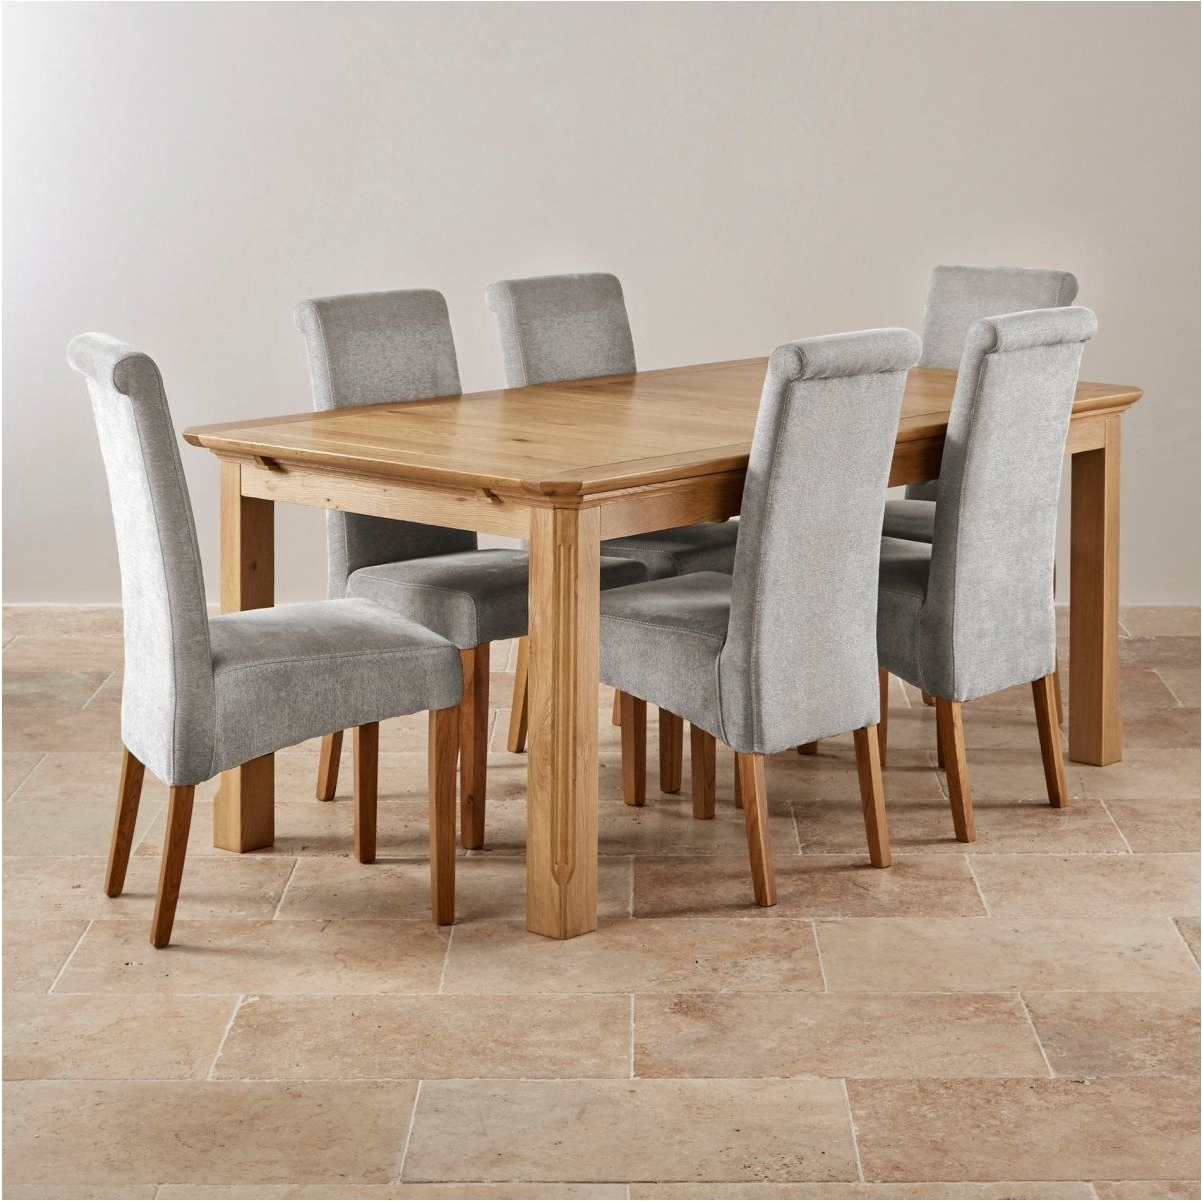 Oak Dining Tables With 6 Chairs In Popular Best Solid Oak Dining Table And 6 Chairs Solid Oak Dining Table And (View 11 of 25)